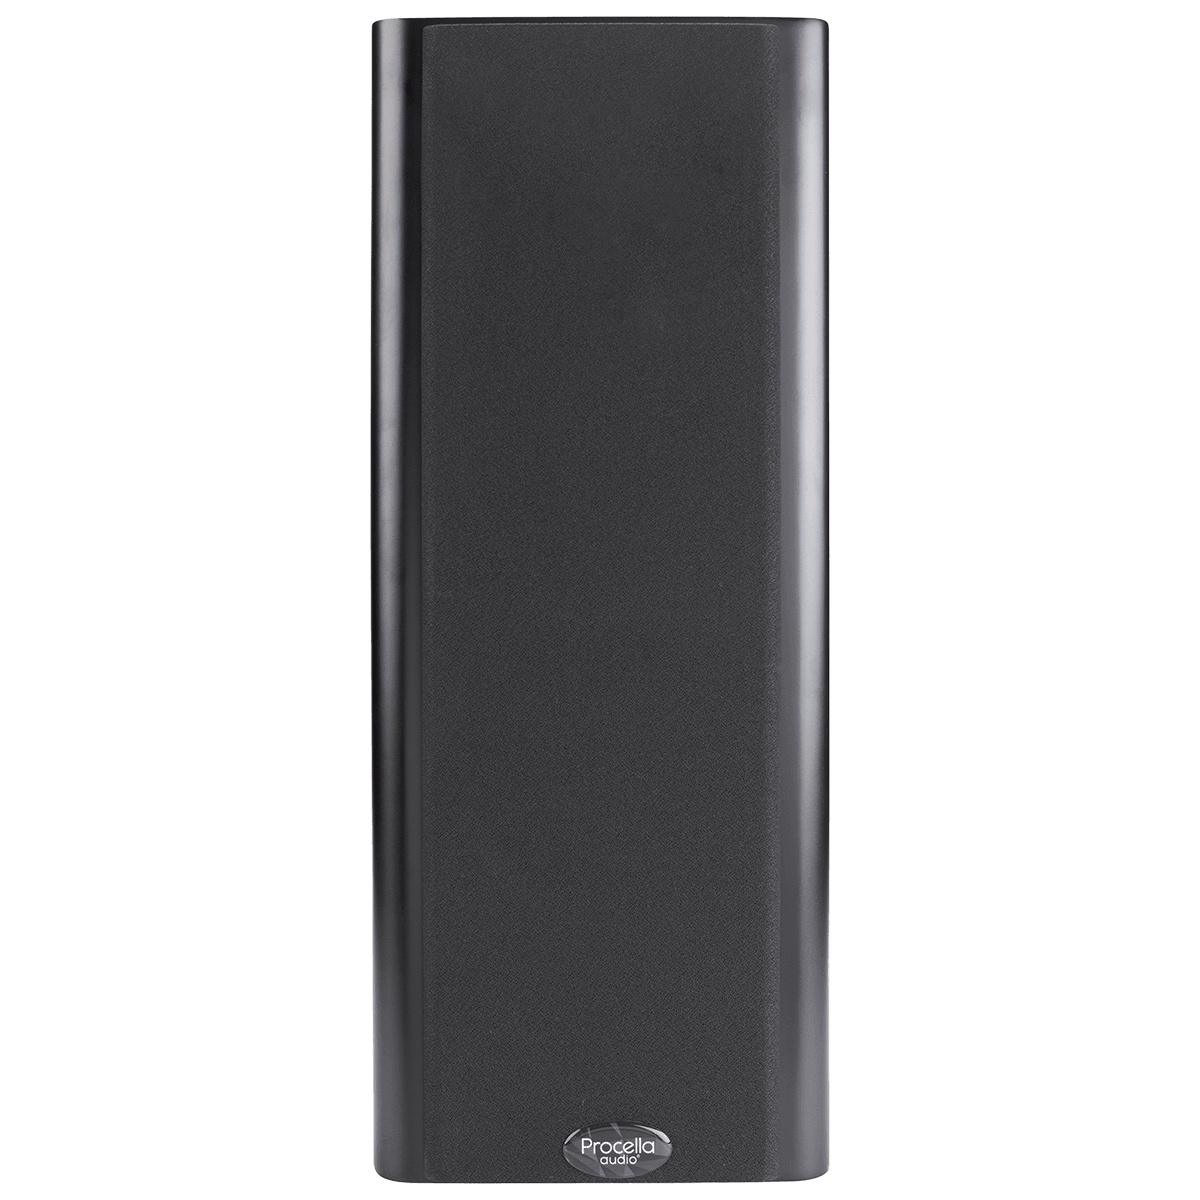 Procella P5V black front view with cover 1200×1200